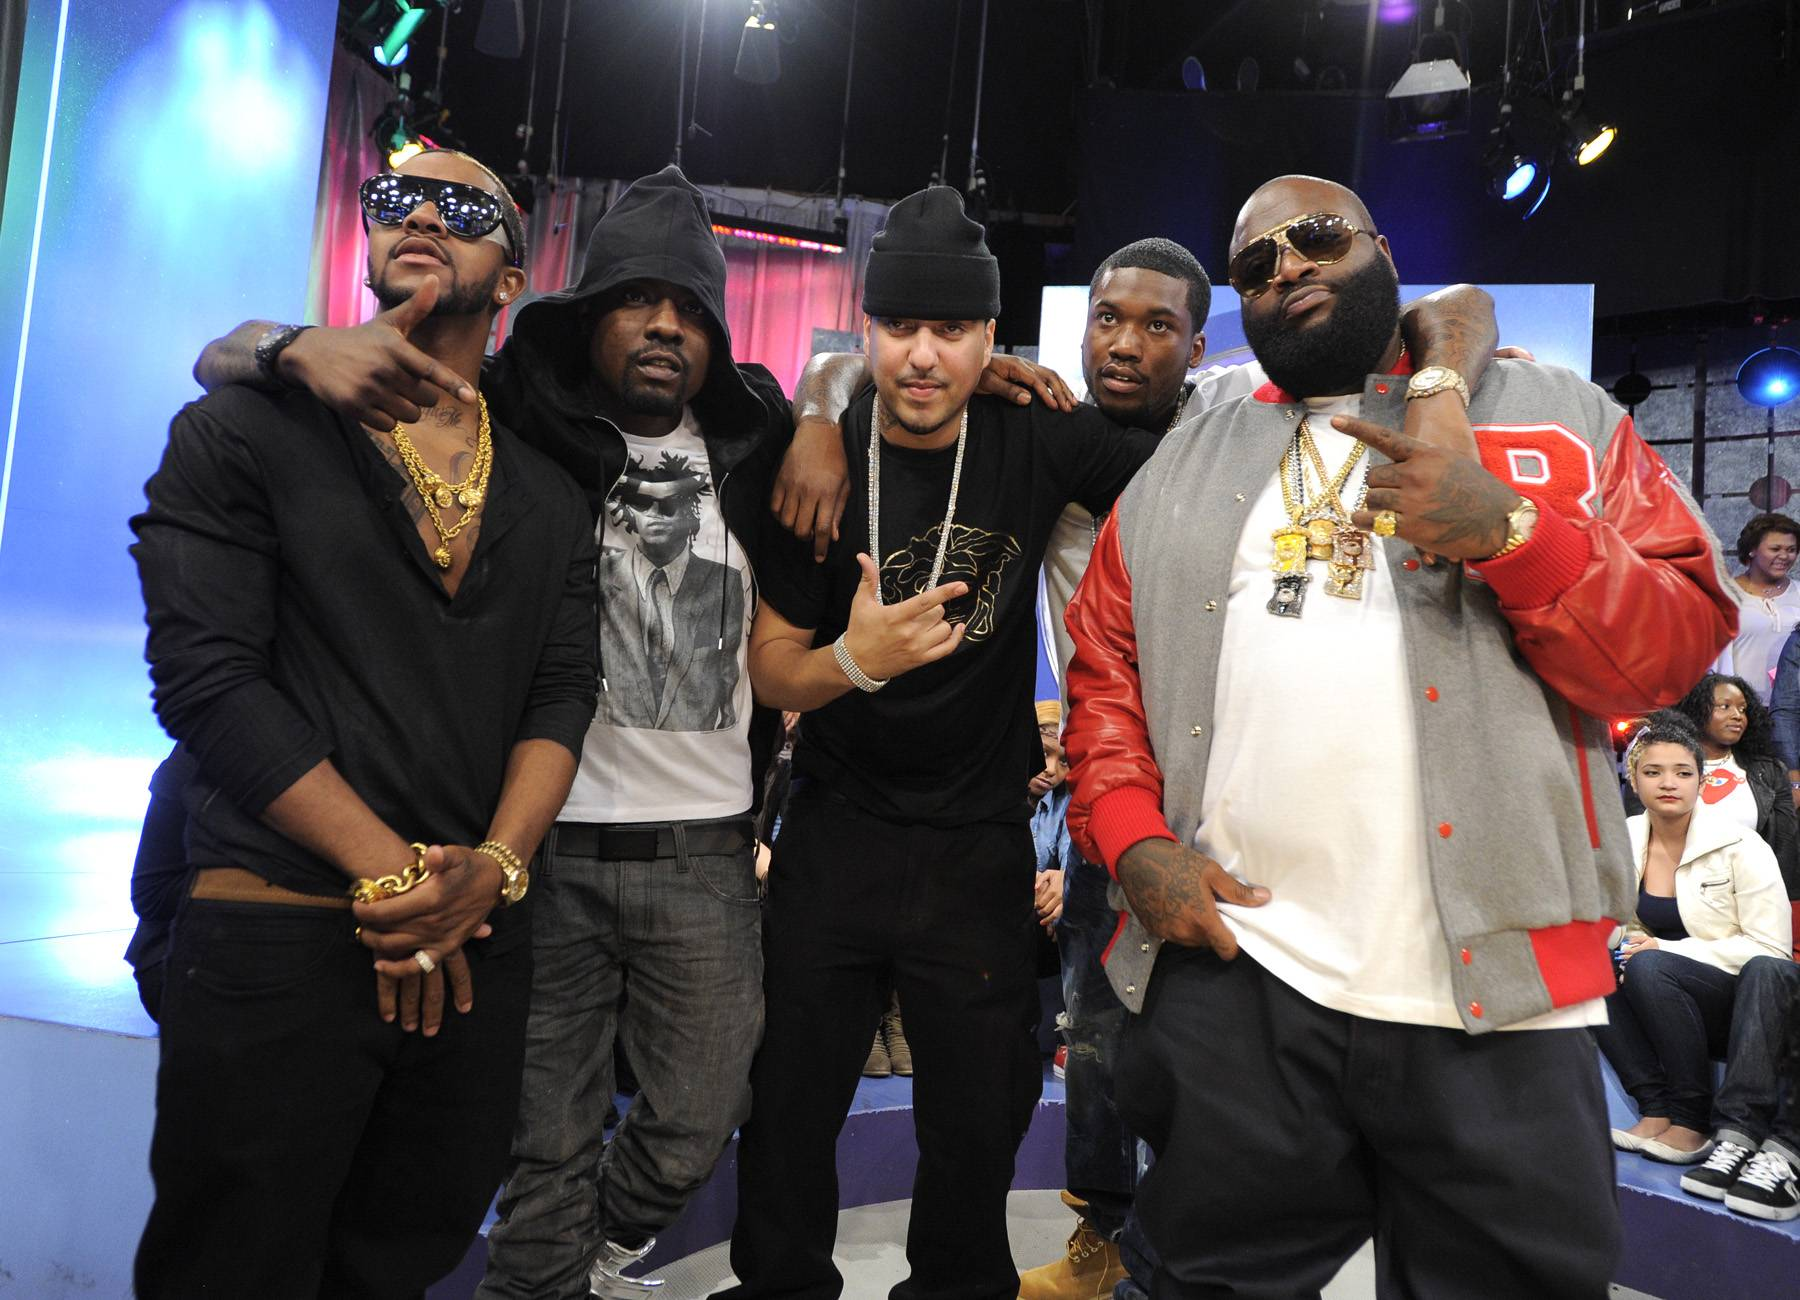 Maybach Music Group - With a lineup that includes Rick Ross, Wale, Meek Mill, Omarion and others, label/crew Maybach Music Group is throwing their weight around in the Best Group category. (Photo: John Ricard/BET)